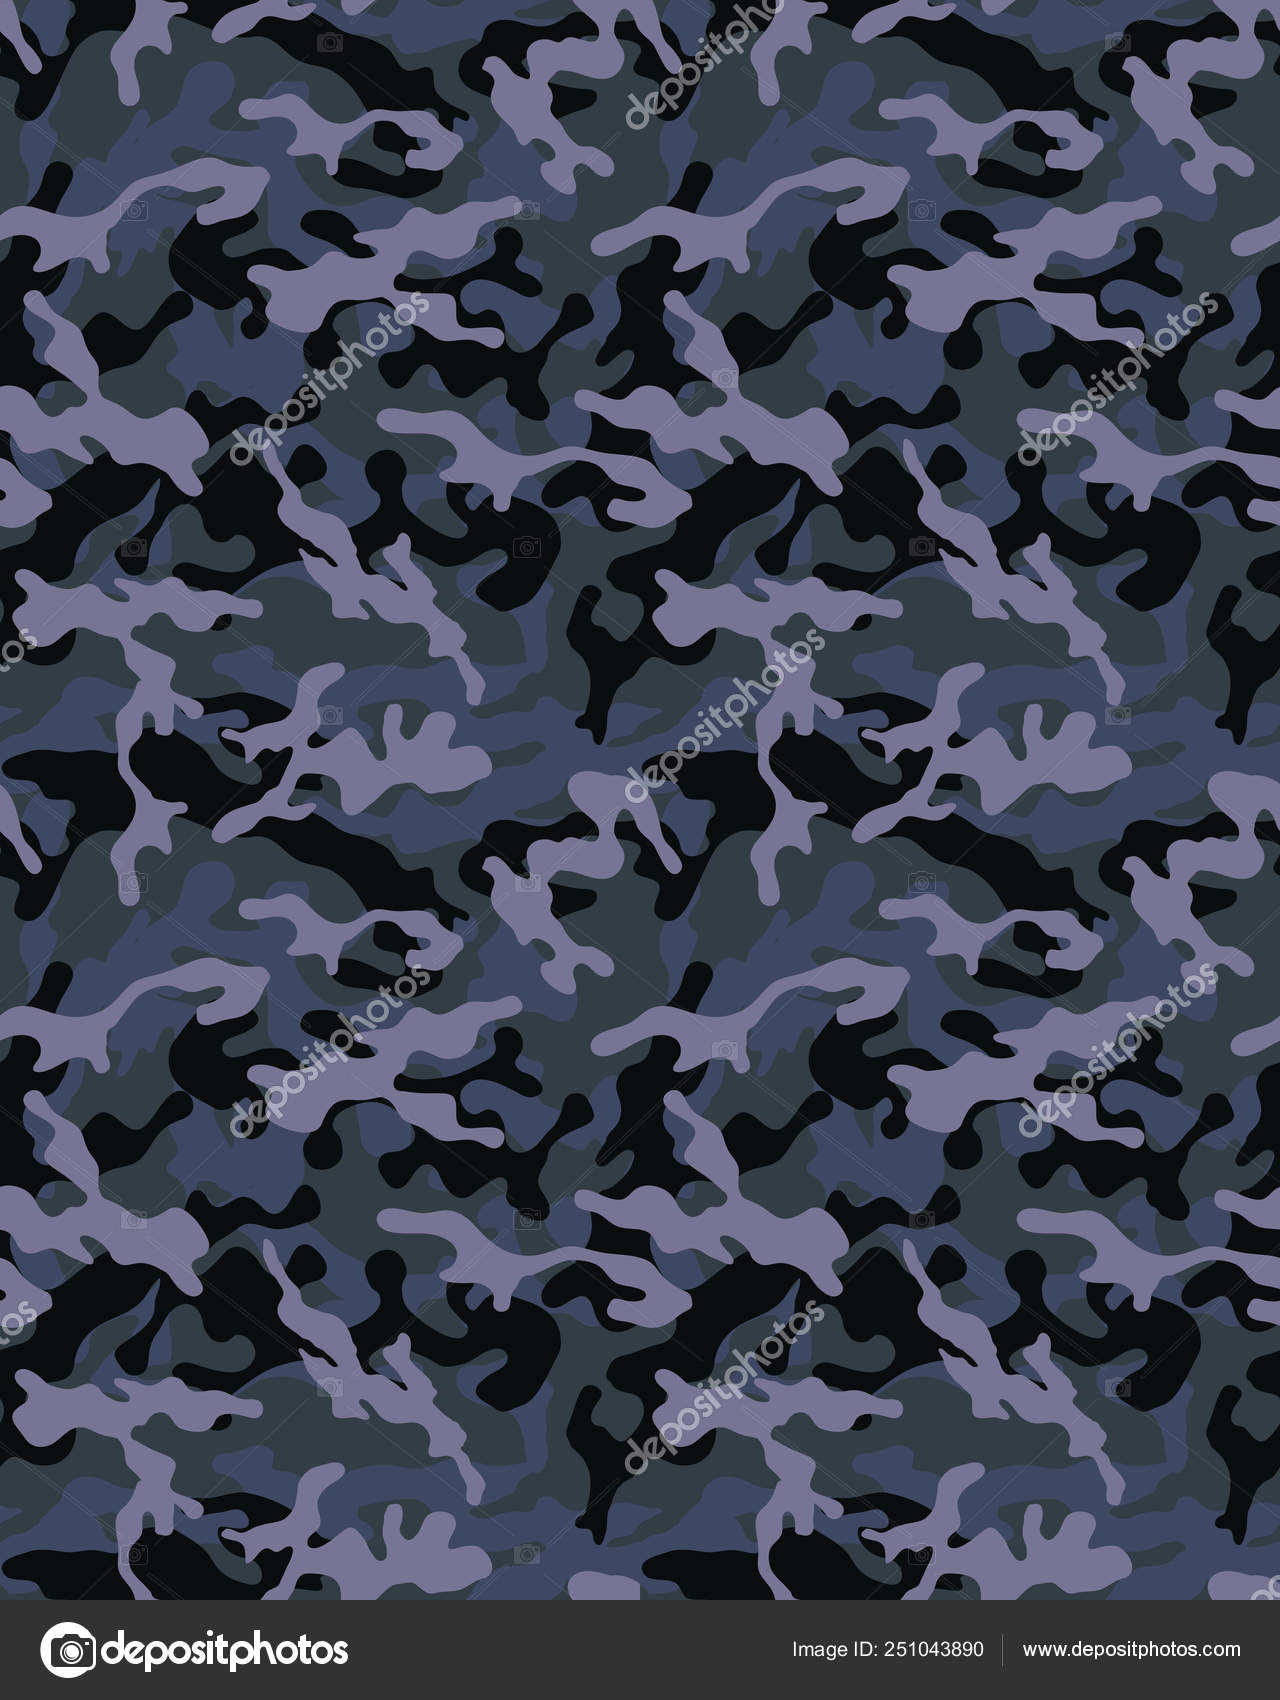 graphic regarding Camo Printable named Camouflage Behavior Seamless Armed service Wallpaper Army Style